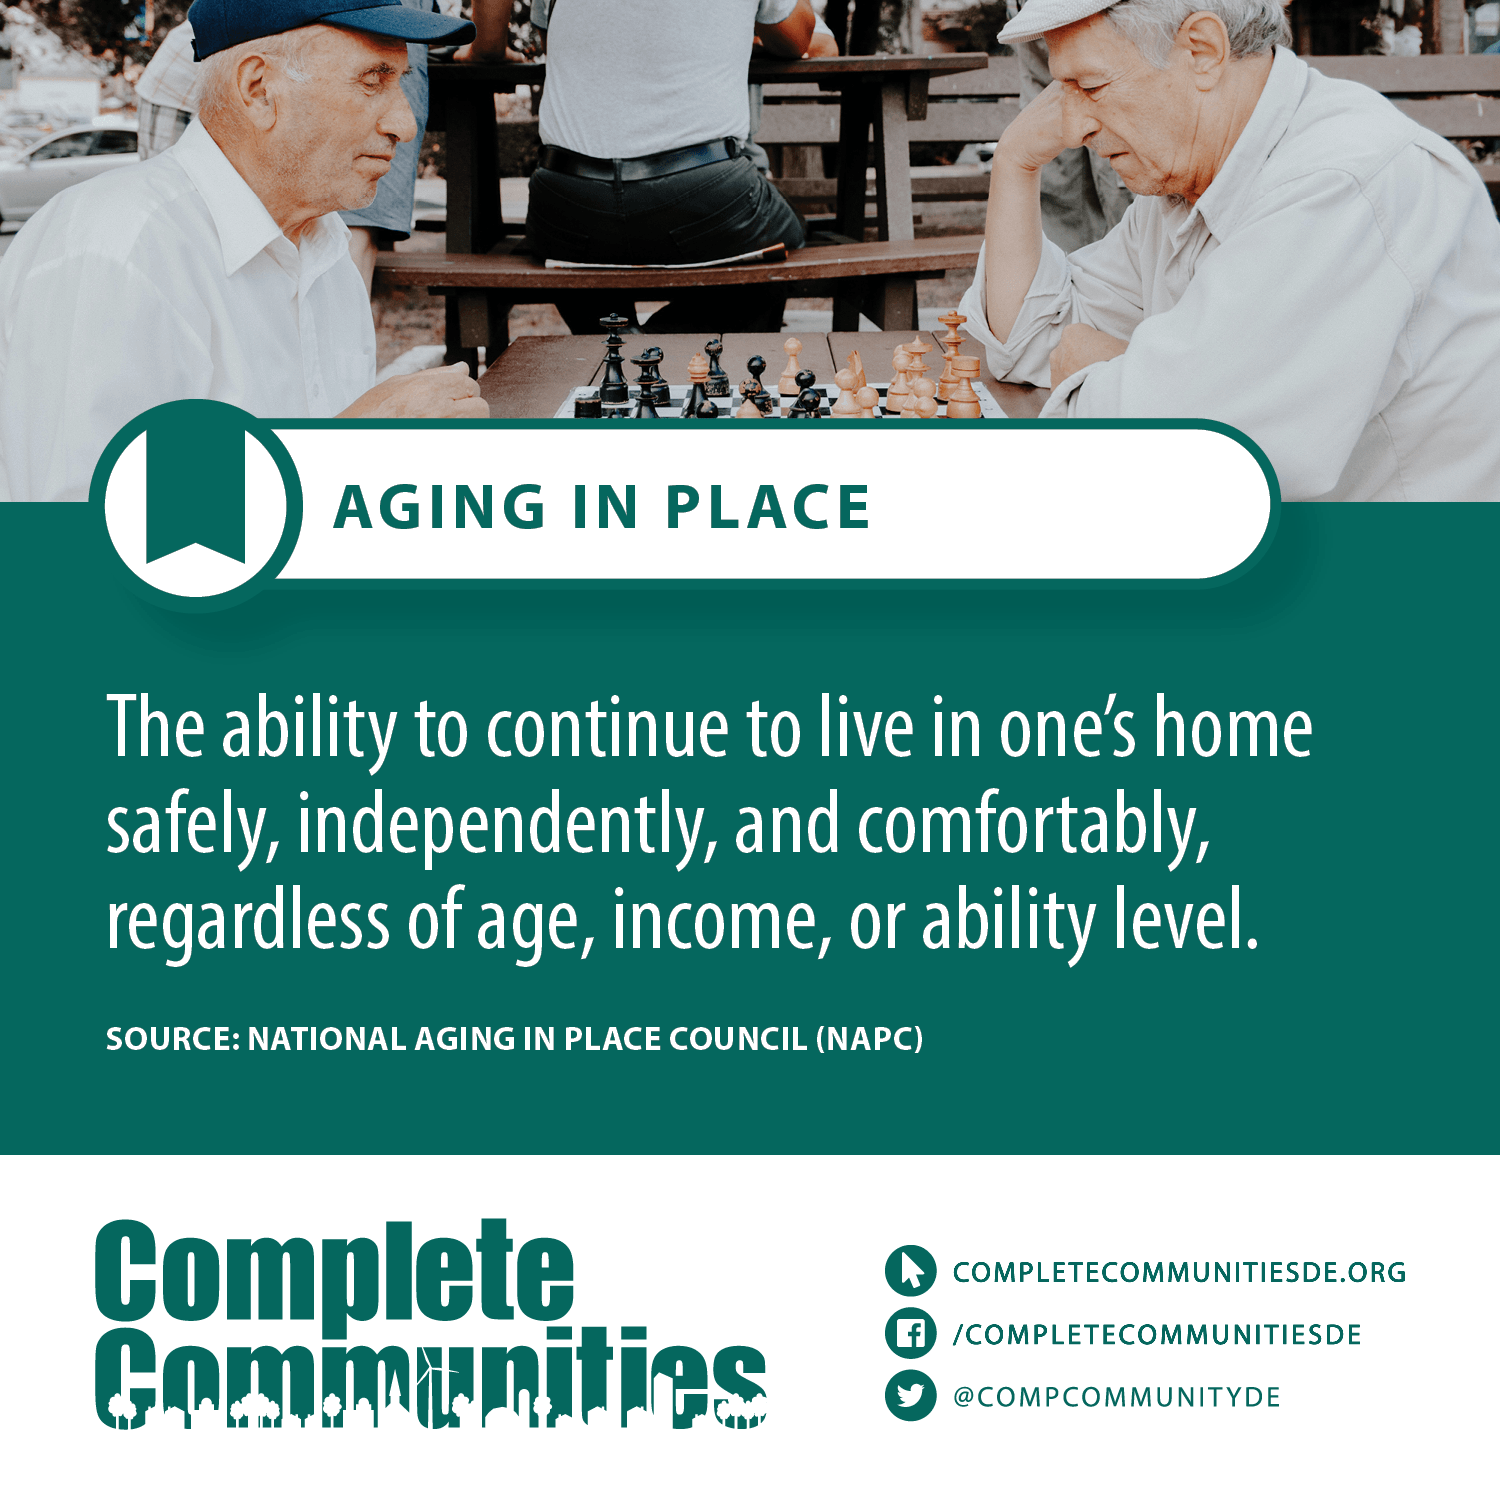 Aging in place: the ability to continue to live in one's home safely, independently, and comfortably, regardless of age, income, or ability level.